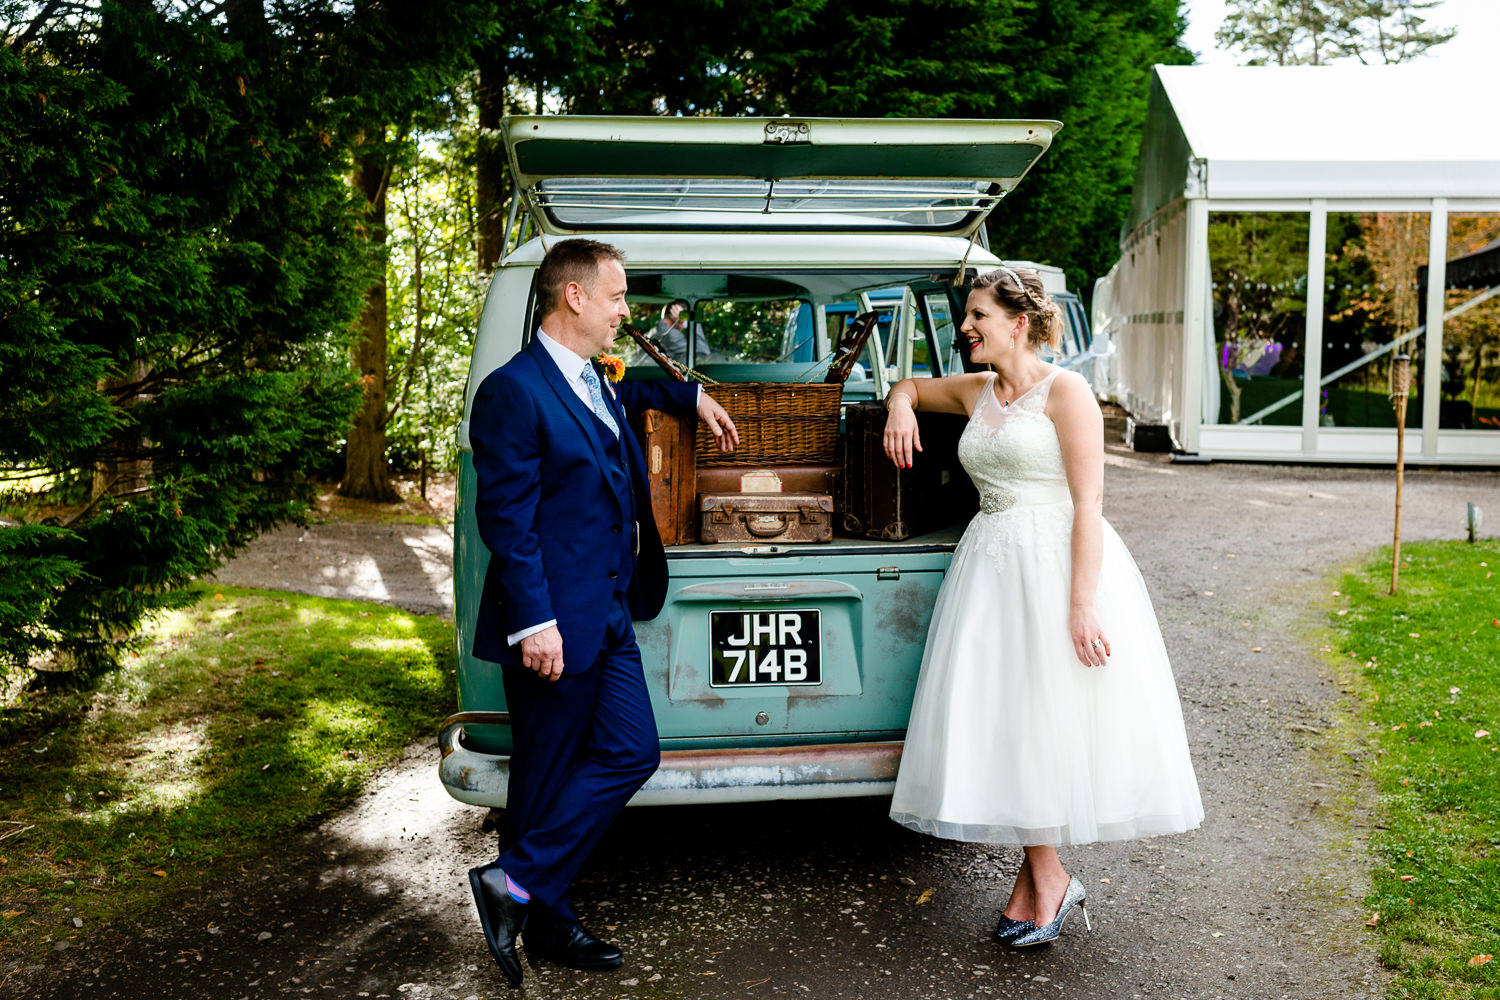 Kat & Ray and a vintage VW campervan at Thornton Manor Wirral on their wedding day.